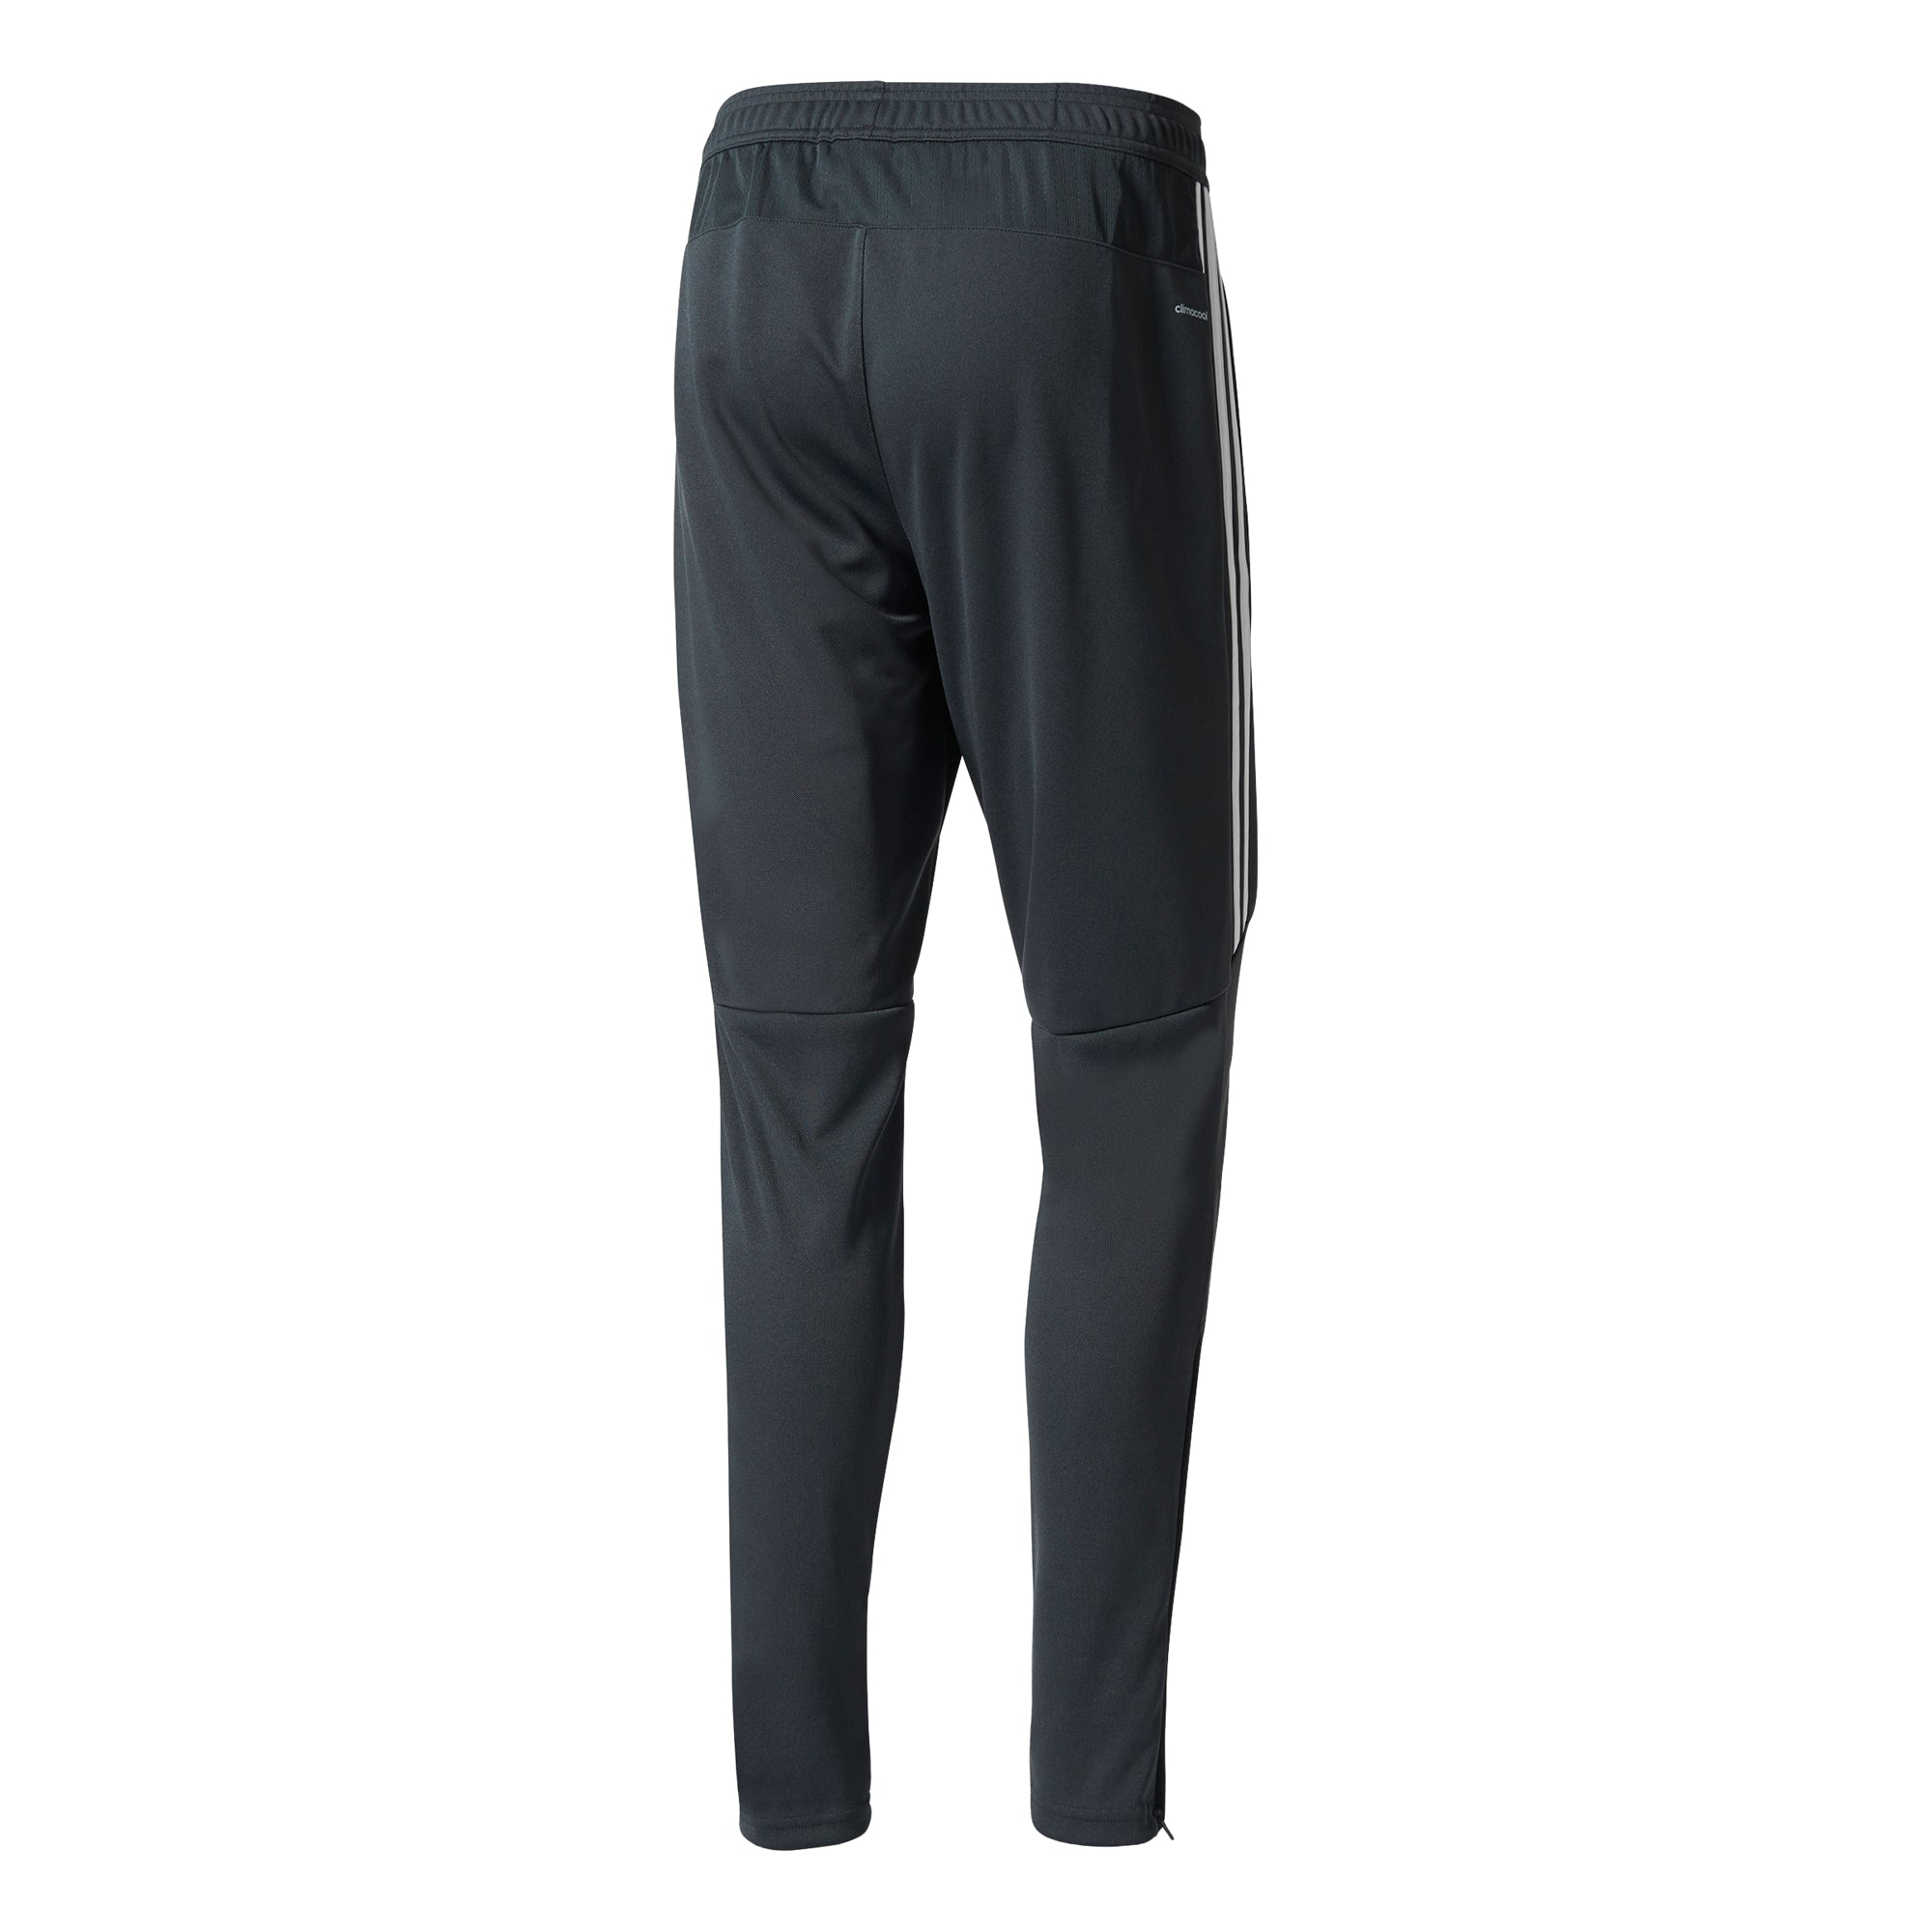 Adidas Tiro Training Pants - Mens